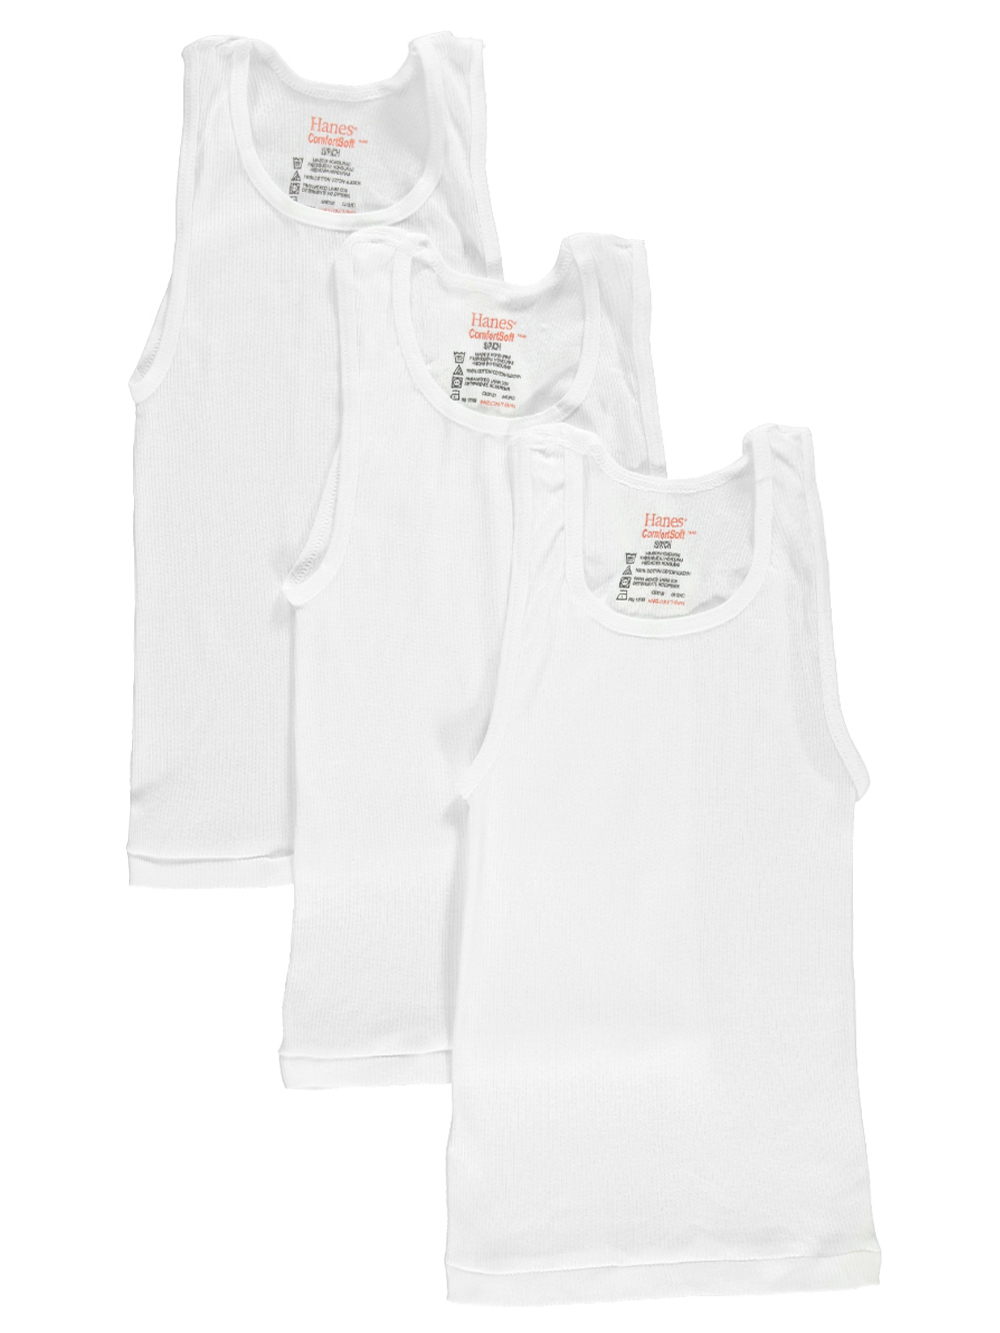 Image of Hanes Little Boys 3Pack Tagless Tanks Sizes 4  7